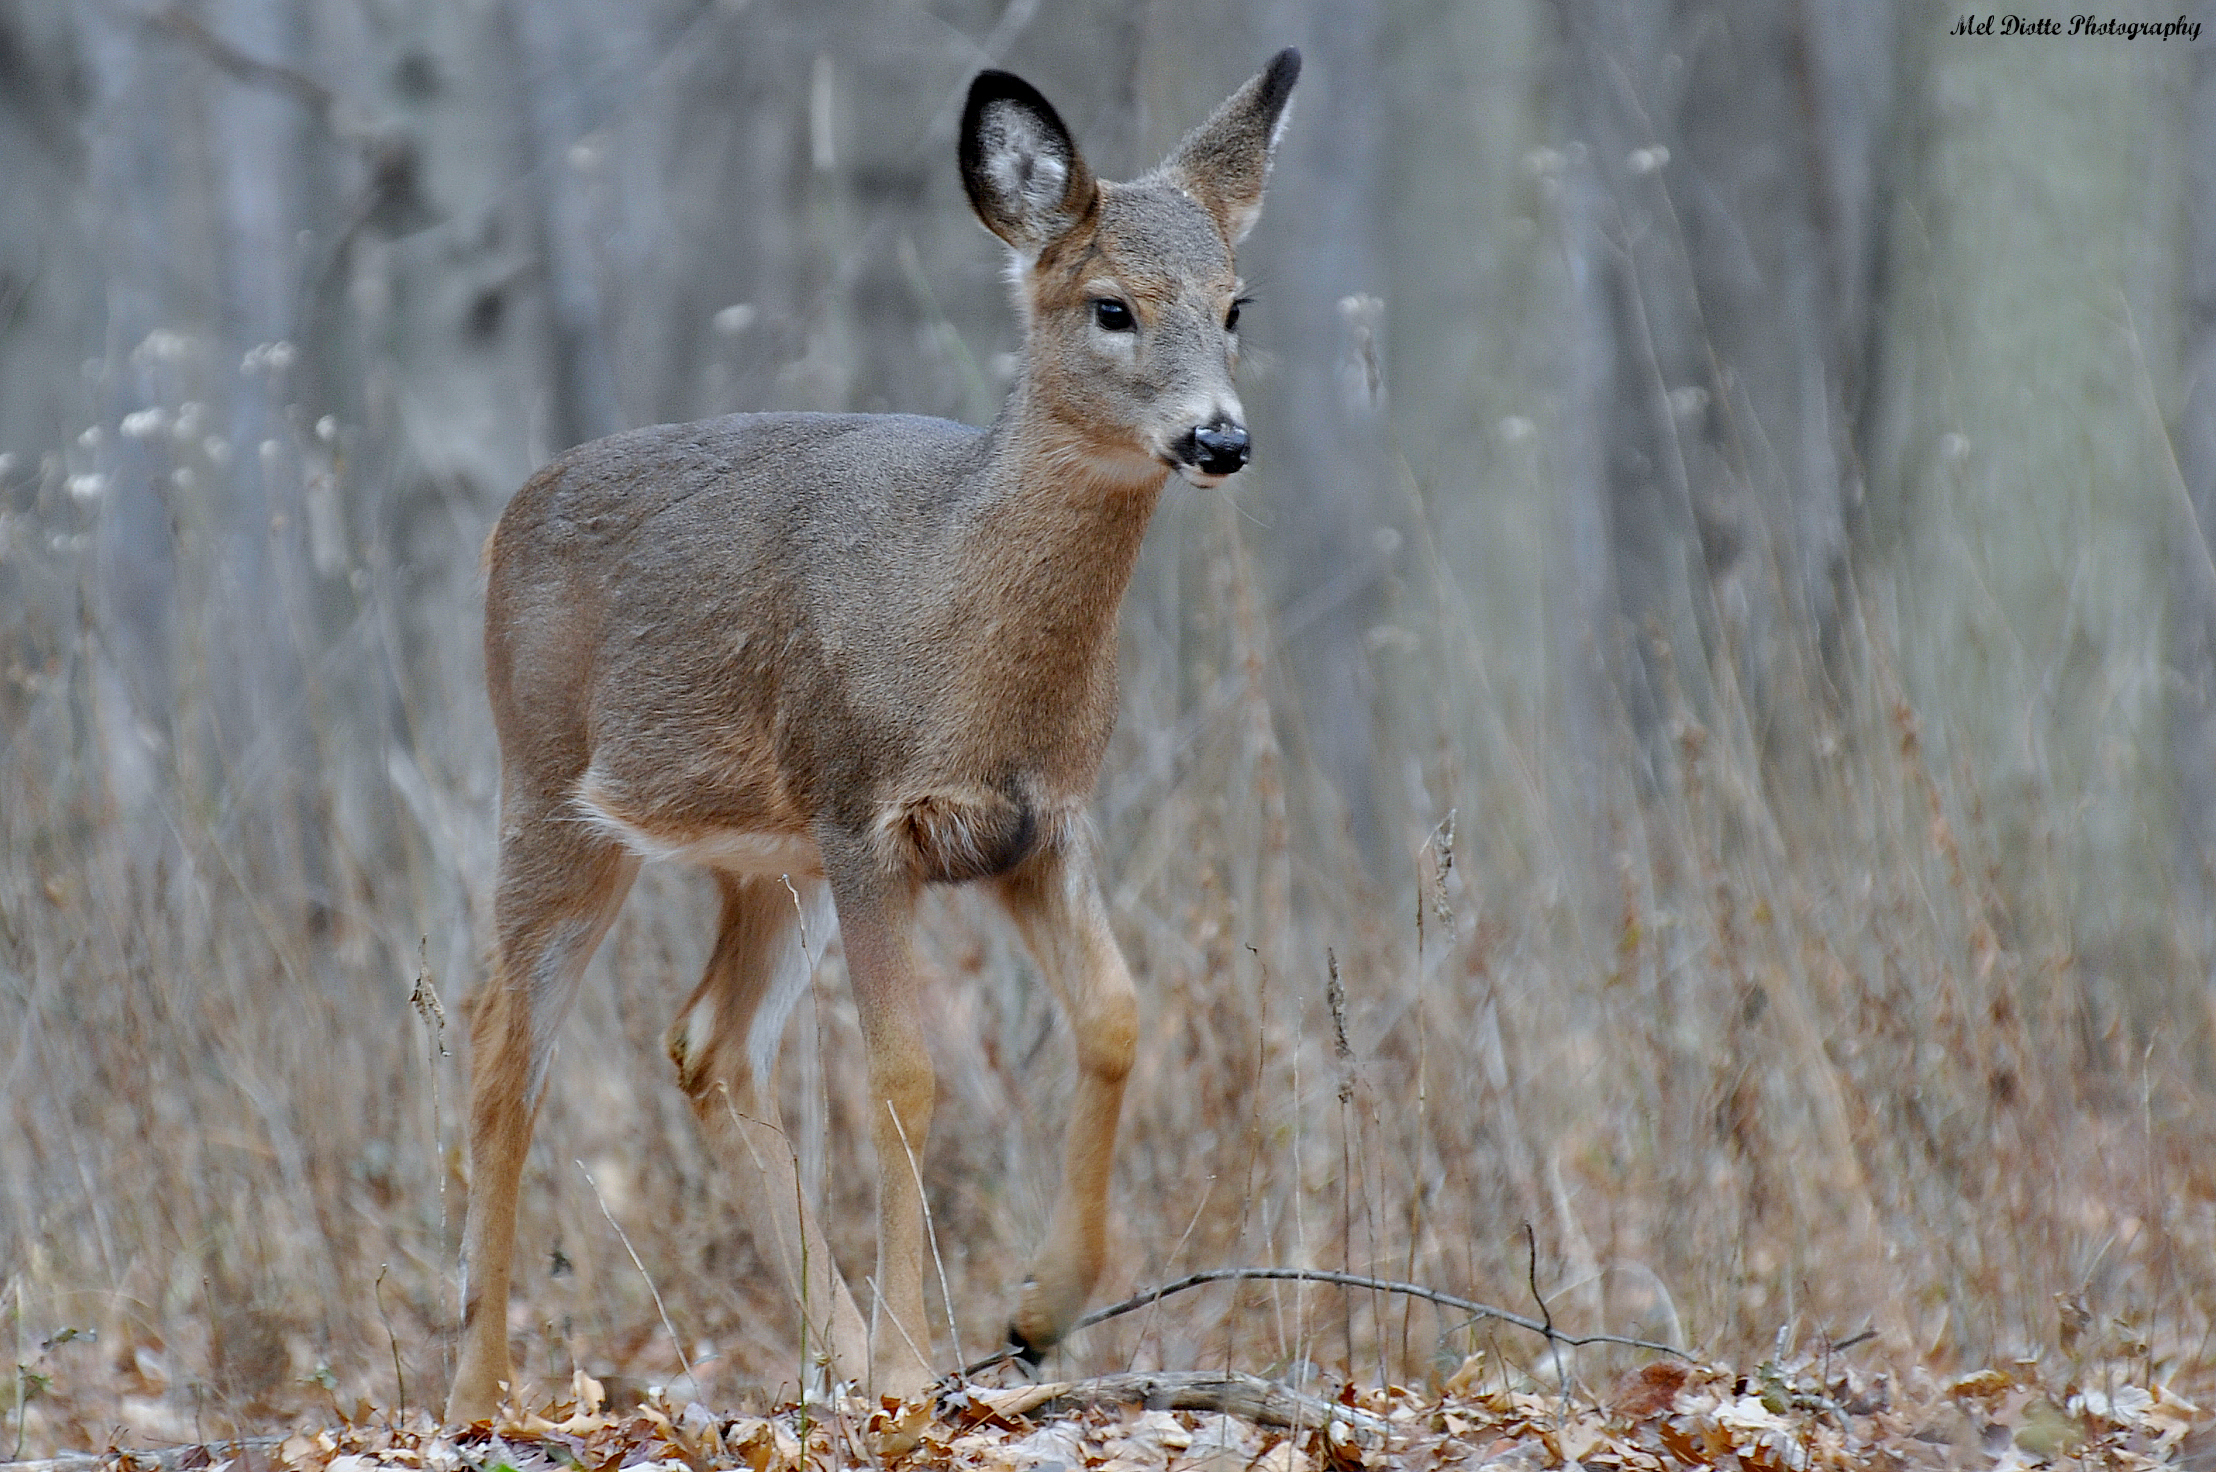 whitetail deer young.jpg